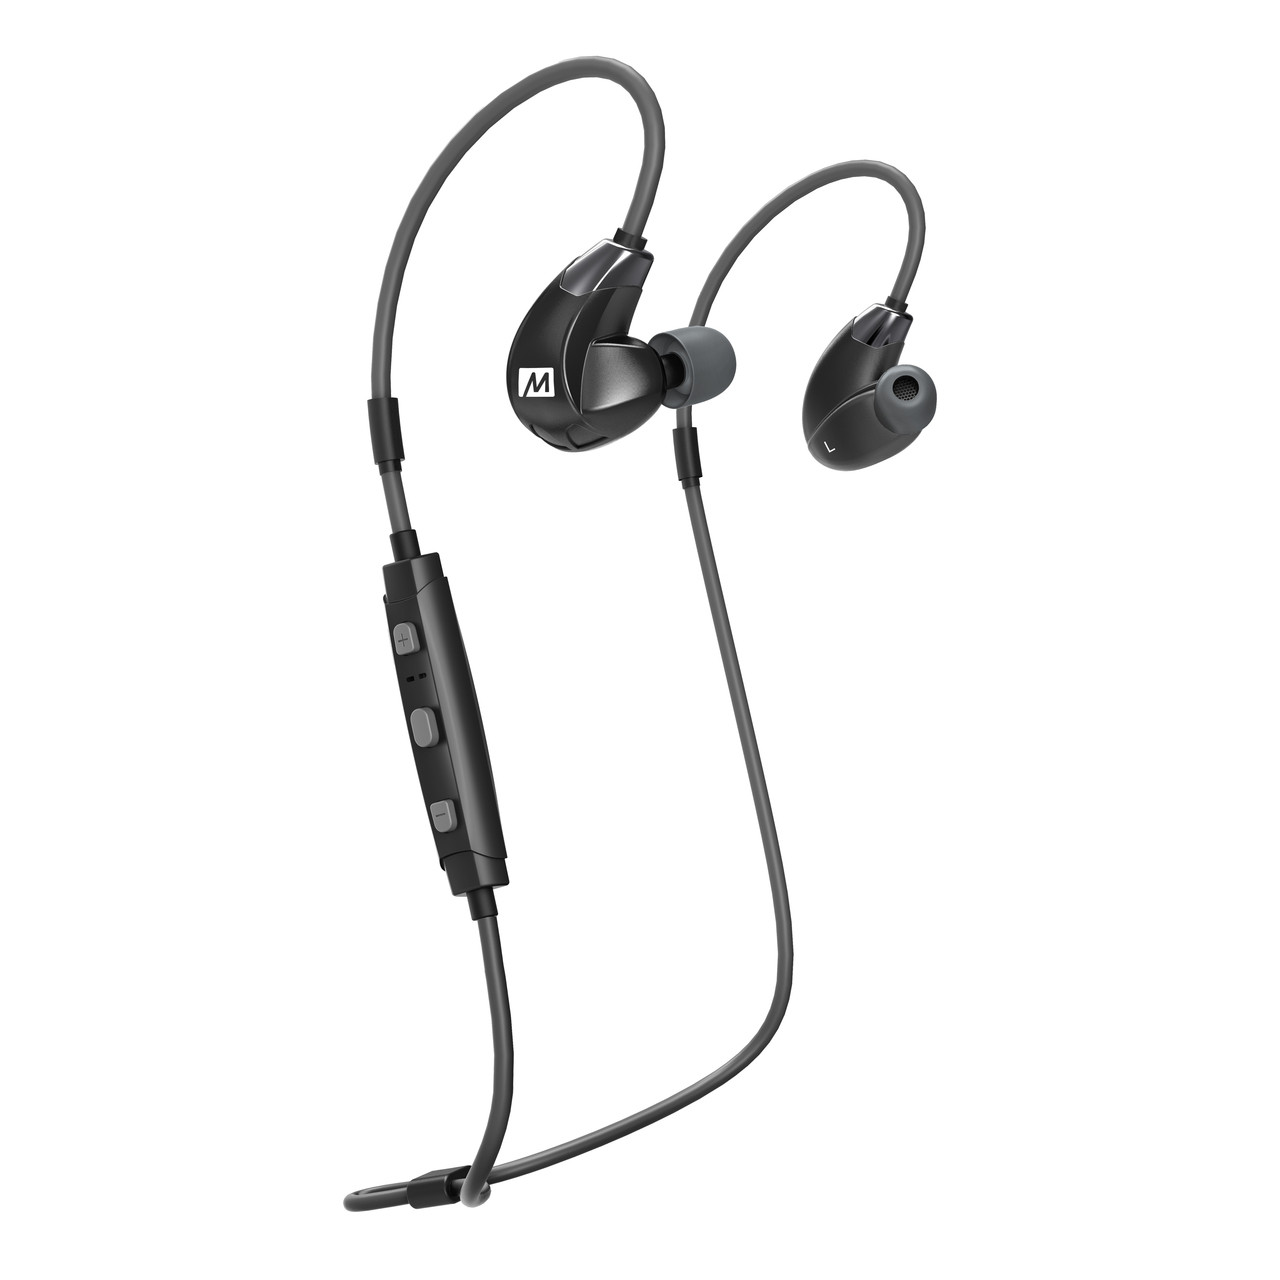 643bd661c18 X7 Plus Stereo Bluetooth Wireless Sports In-Ear HD Headphones with ...